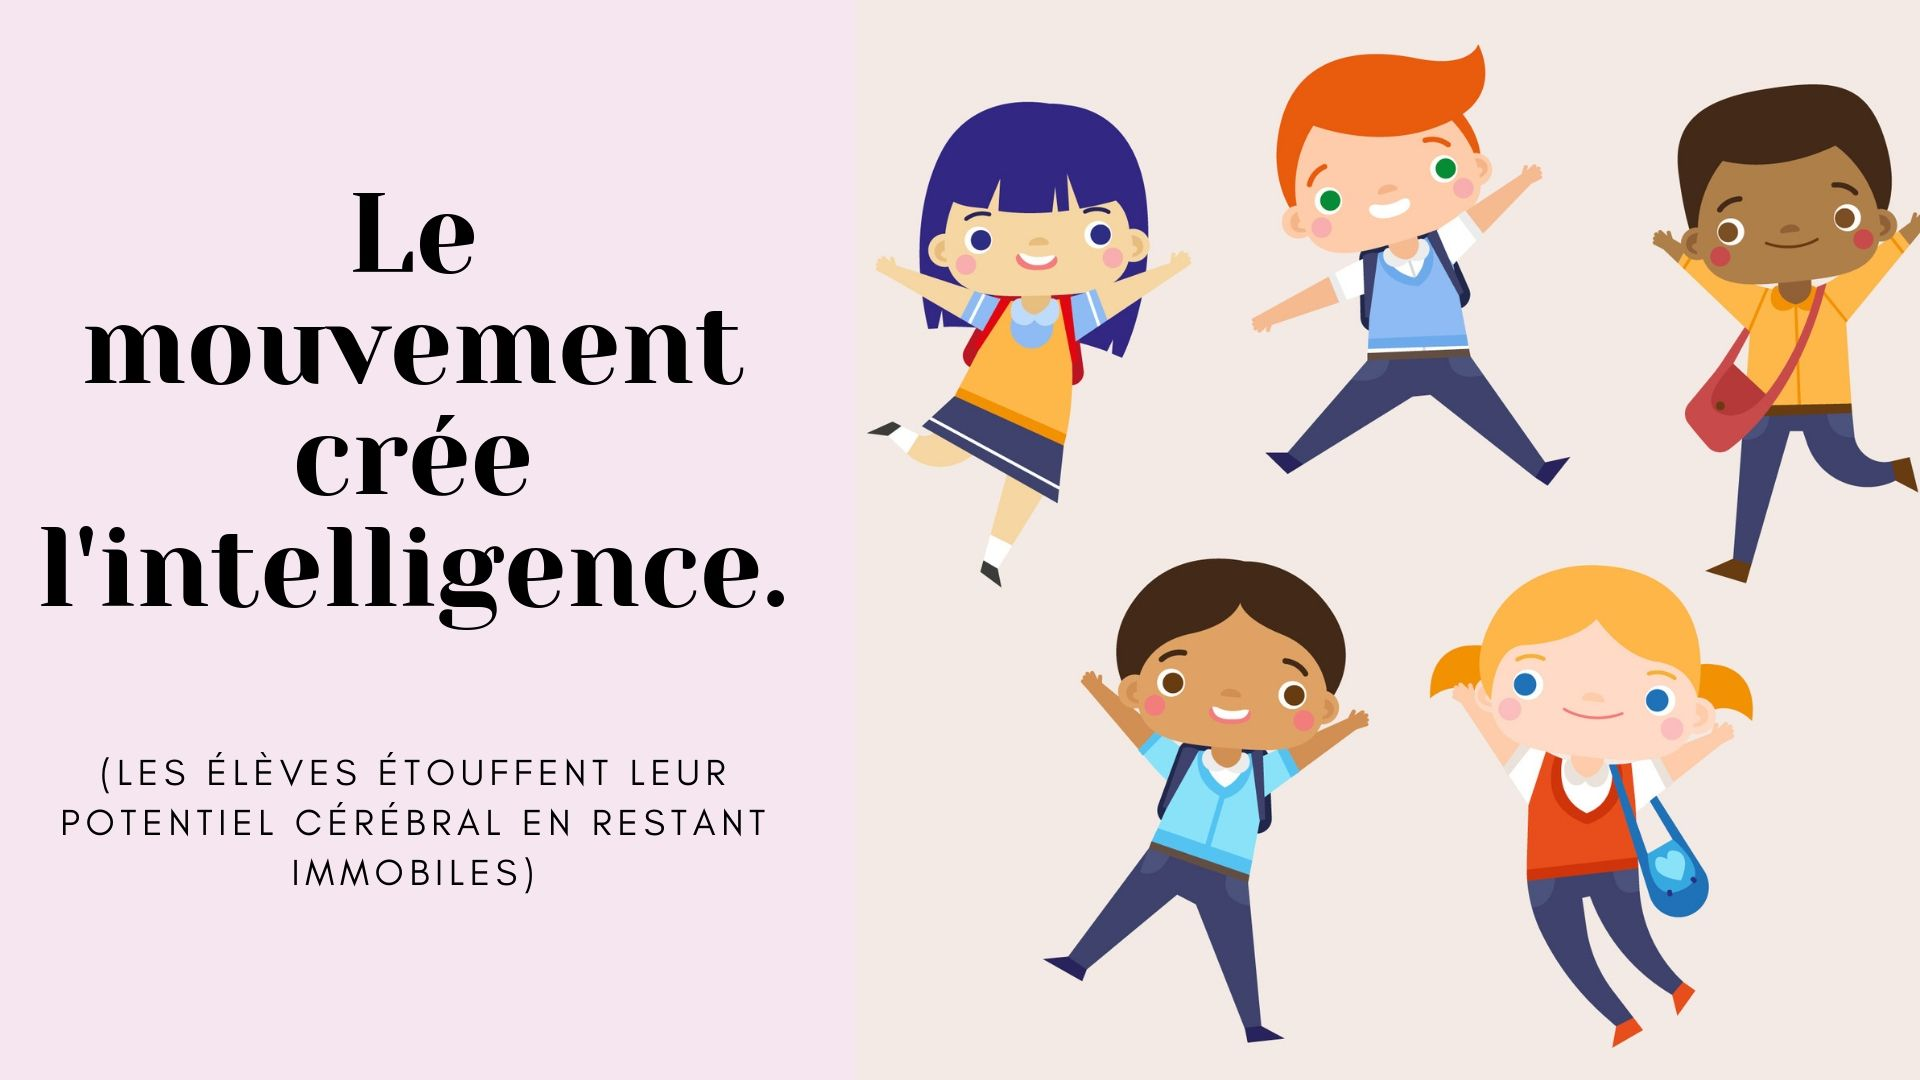 Le mouvement crée l'intelligence.